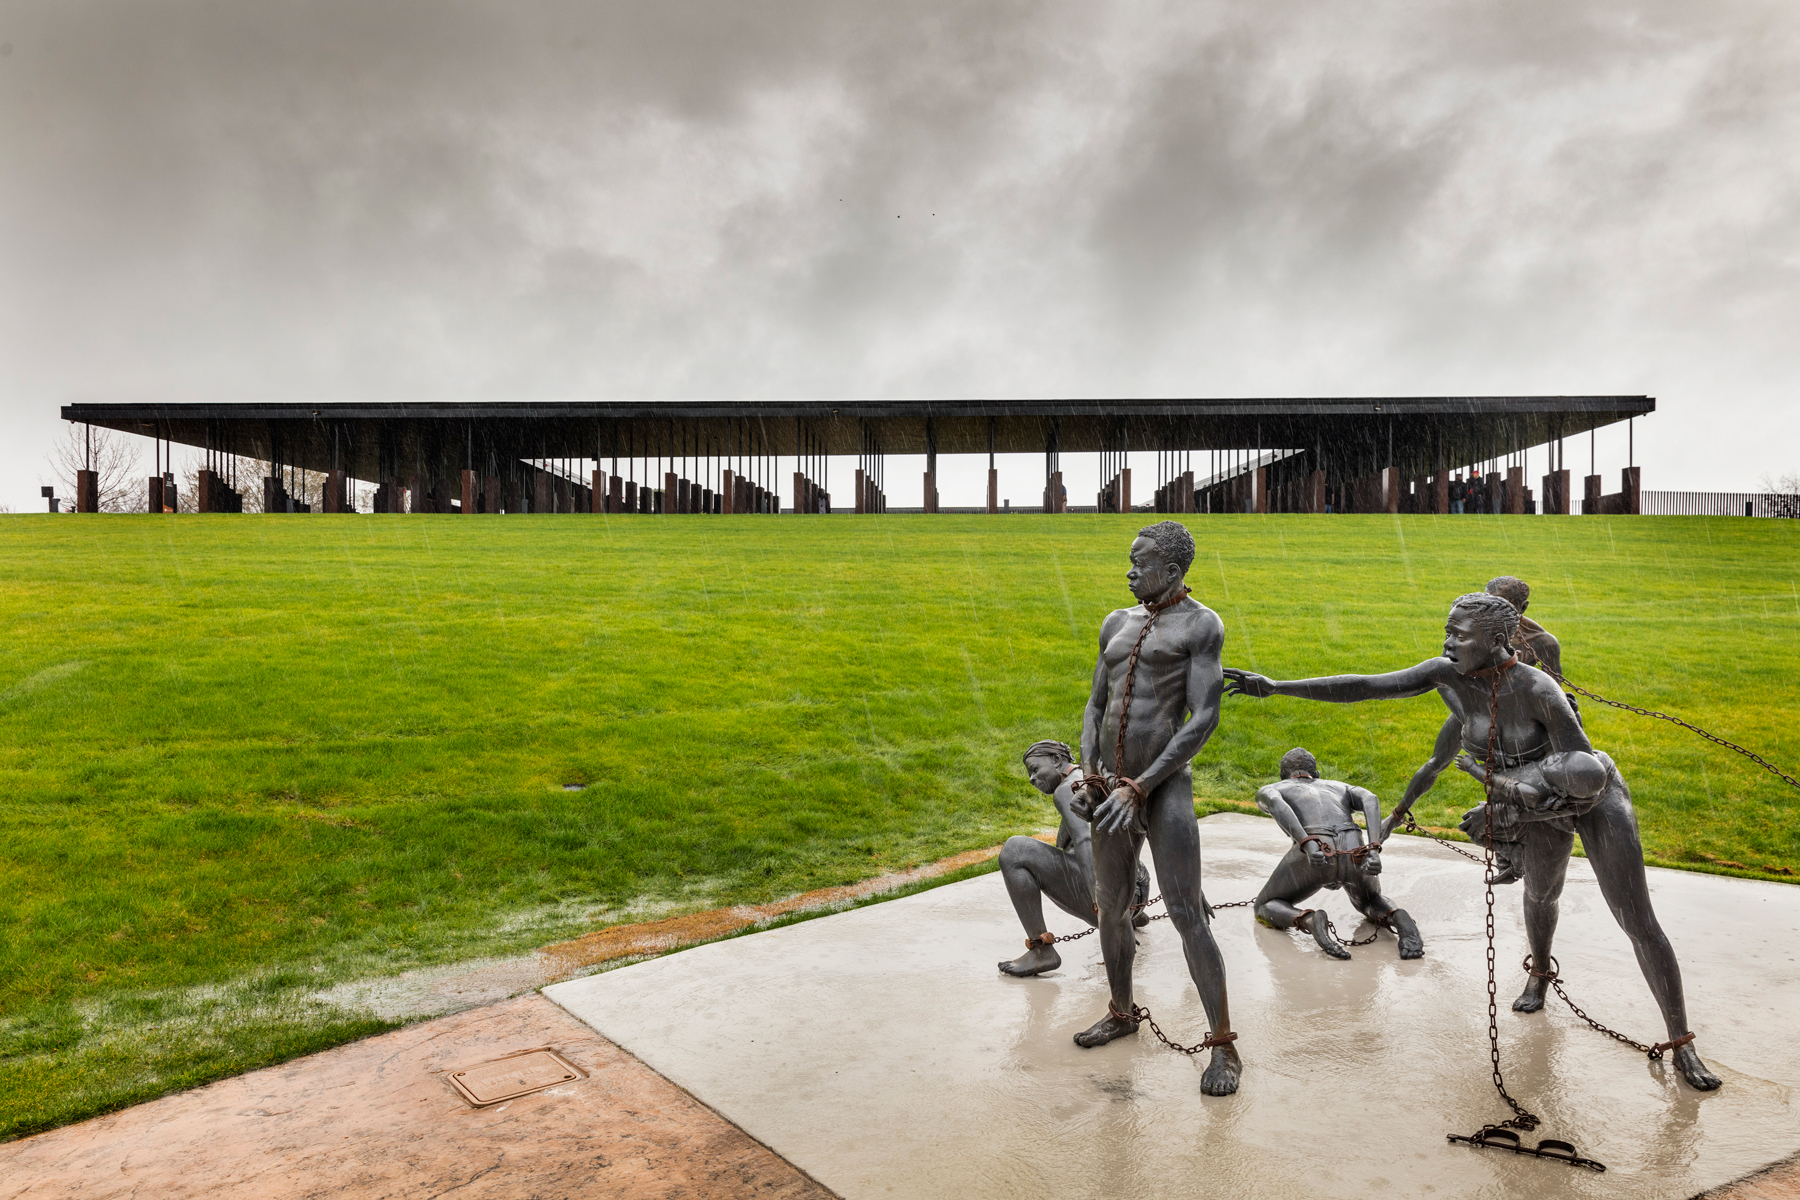 Kwame Akoto-Bamfo's 'Nkyinkim' sculpture, dedicated to the memory of the victims of the Transatlantic slave trade at the entrance of the National Memorial for Peace And Justice